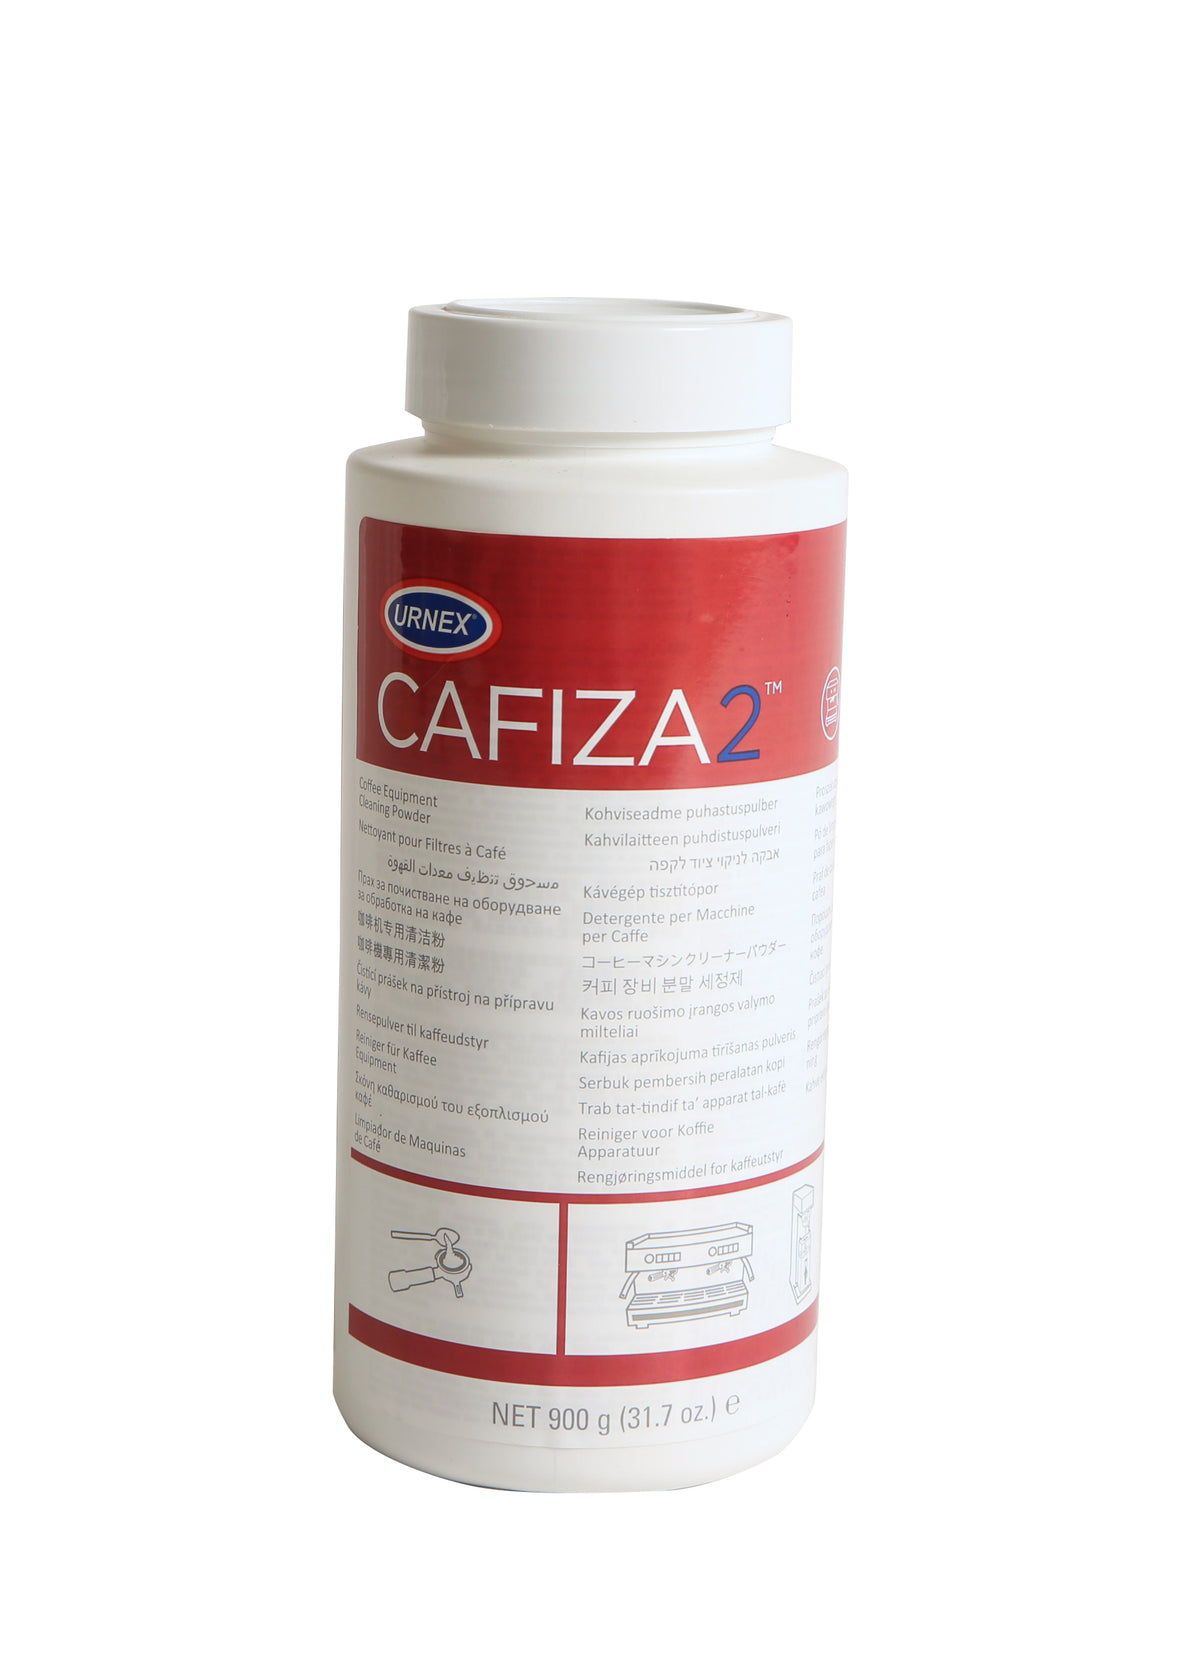 Urnex Cafiza 2 Detergent - Espresso Machine Cleaning Powder